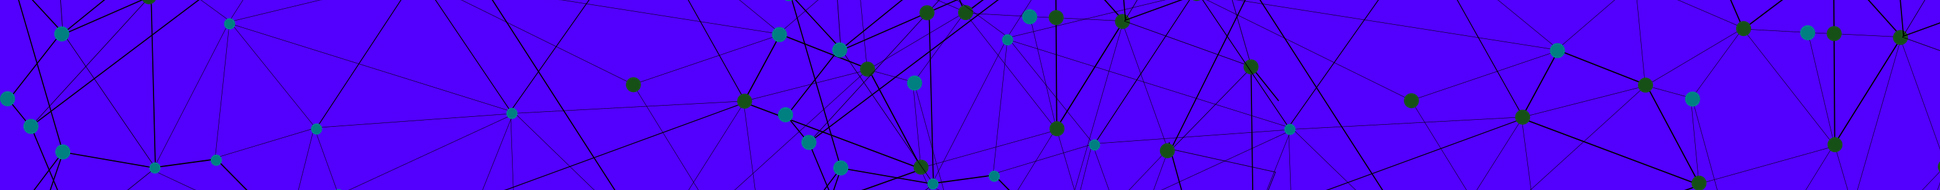 image of networked nodes with a background of blue